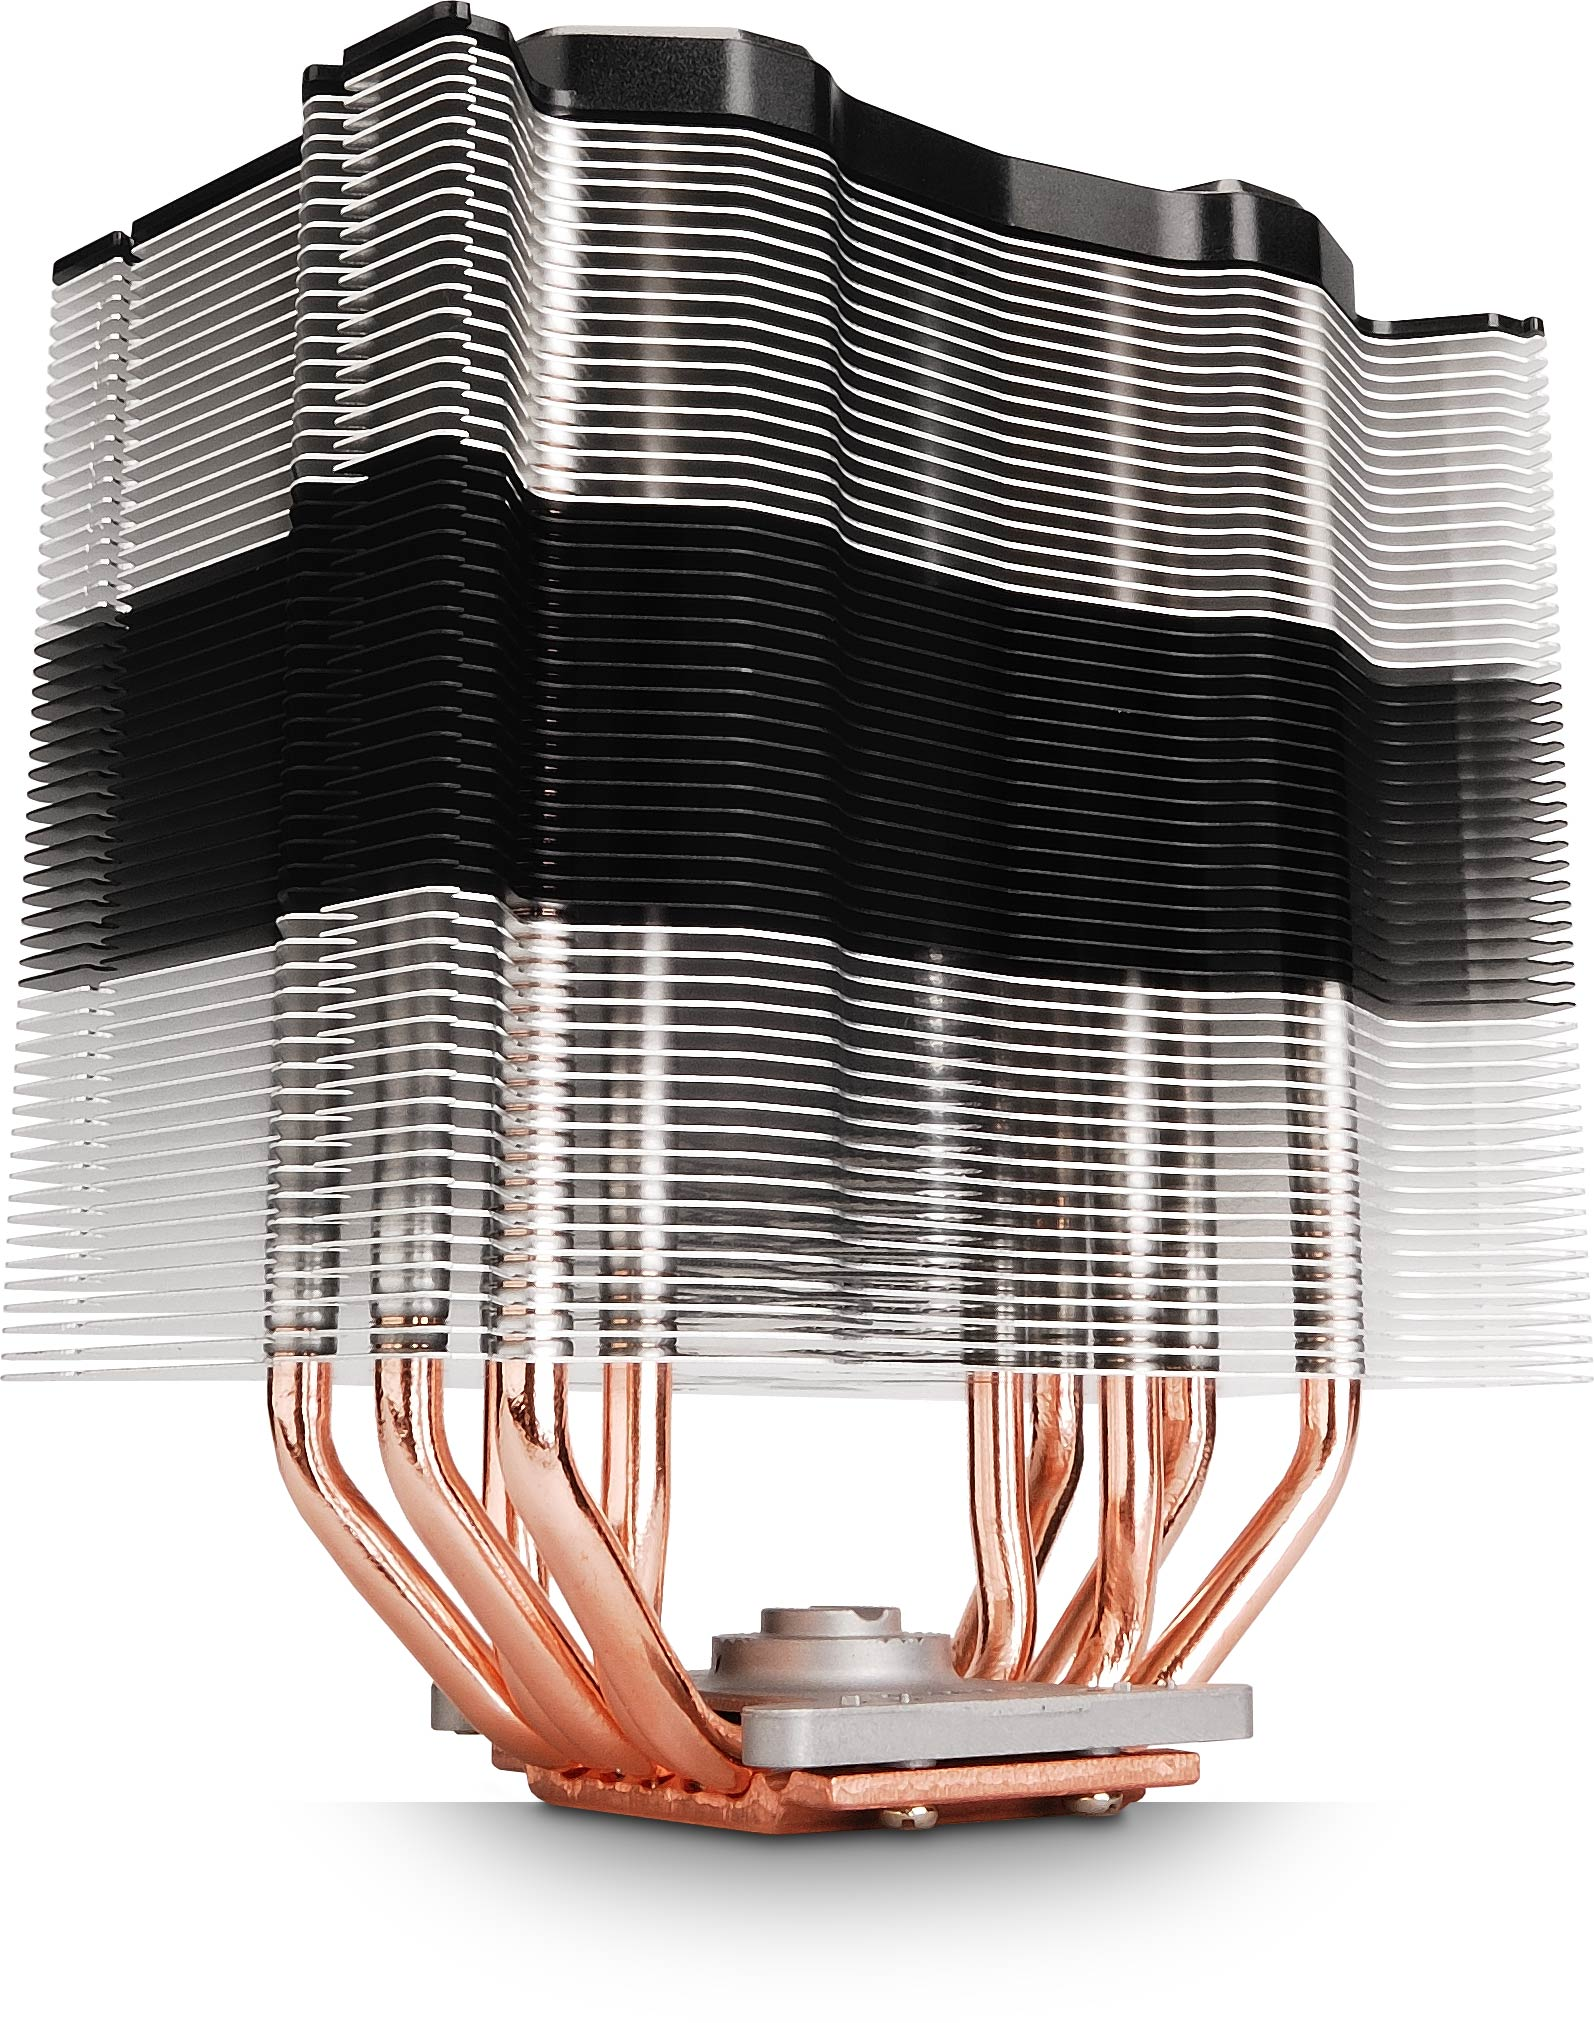 Cnps10x Flex High Performance Cpu Heatsink